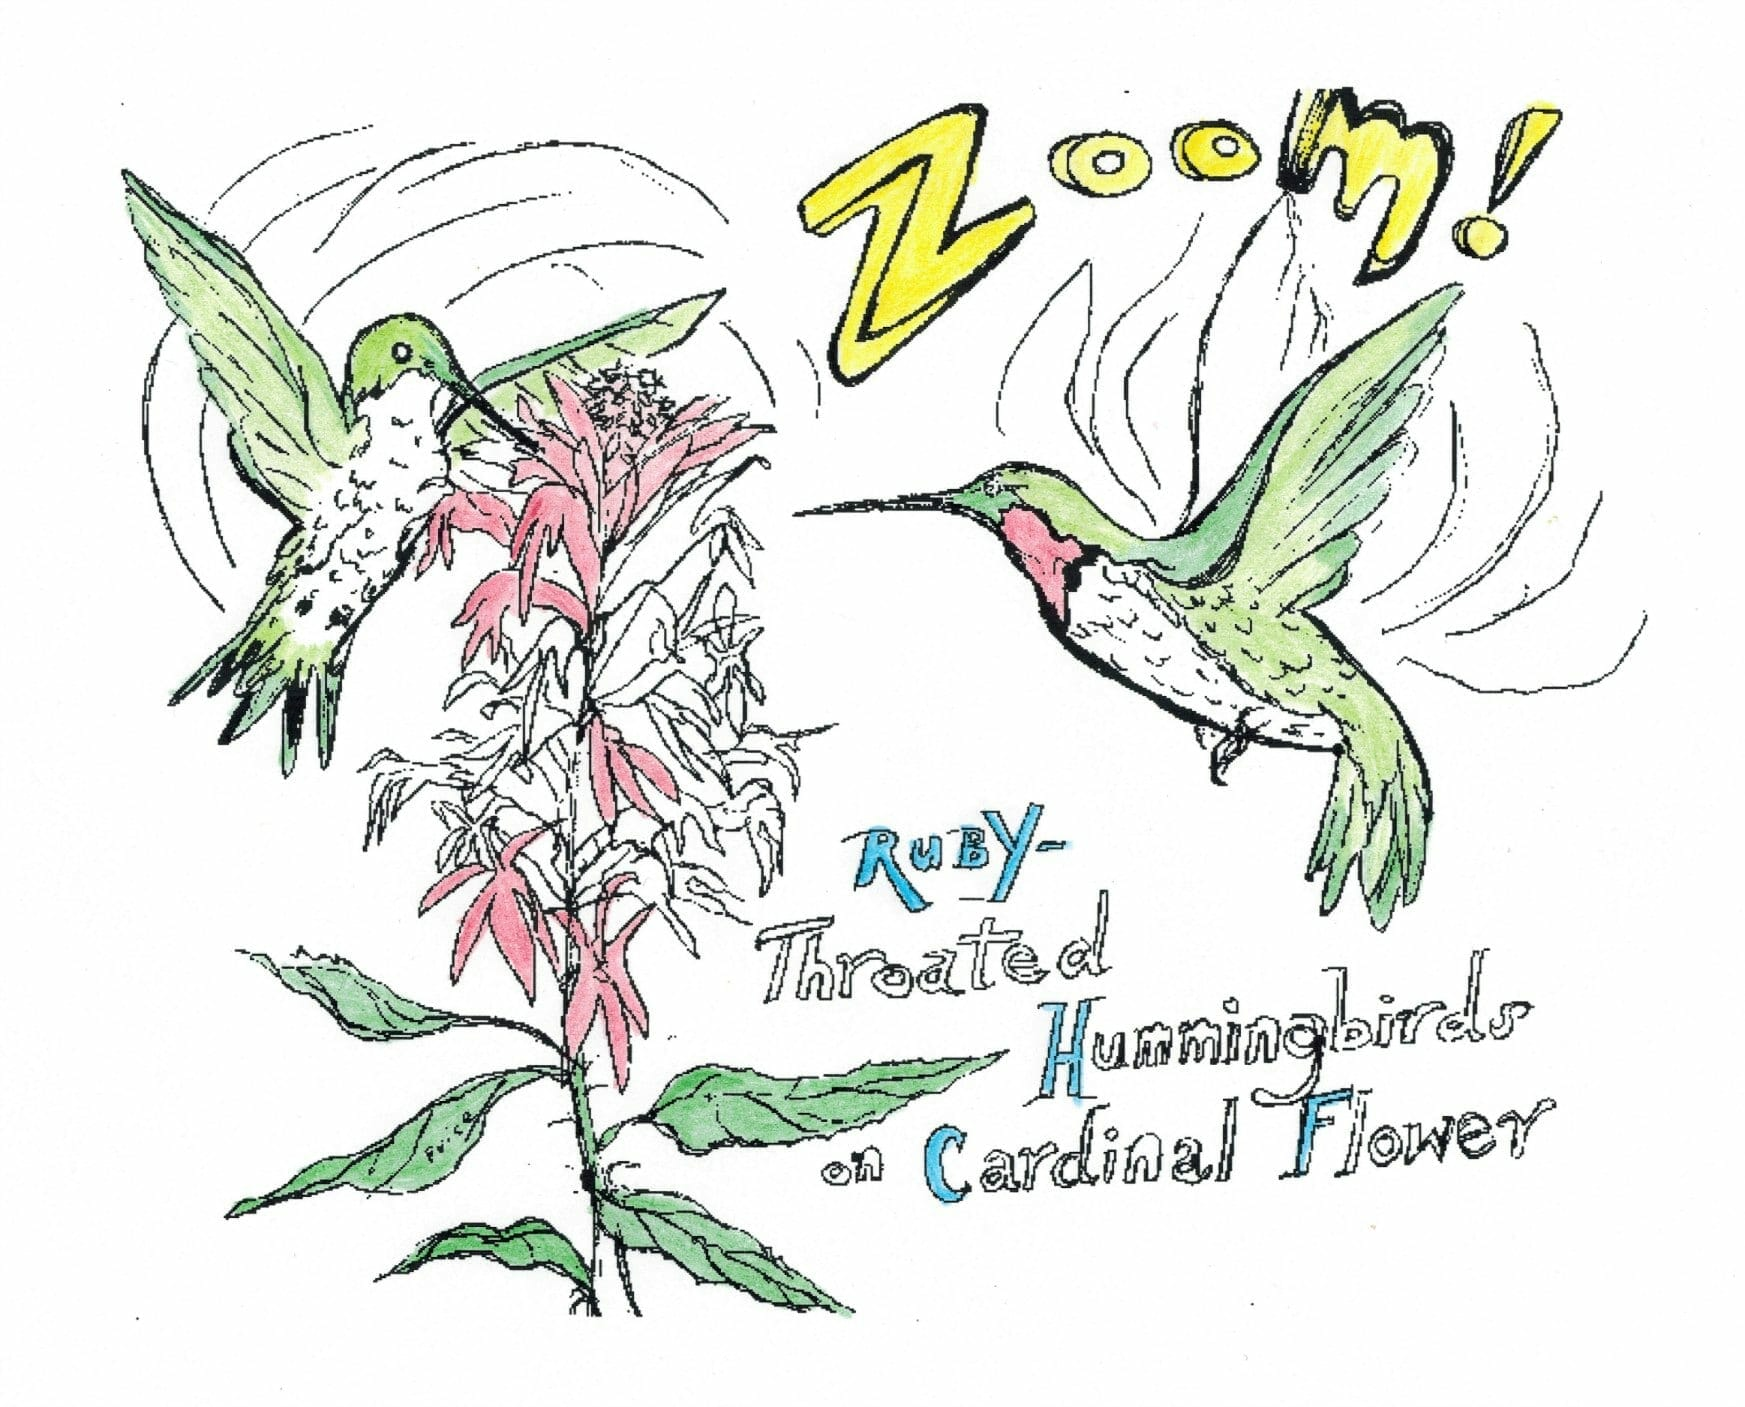 ruby throated hummingbird coloring pages archives kids hummingbird coloring pages coloring pages gnps